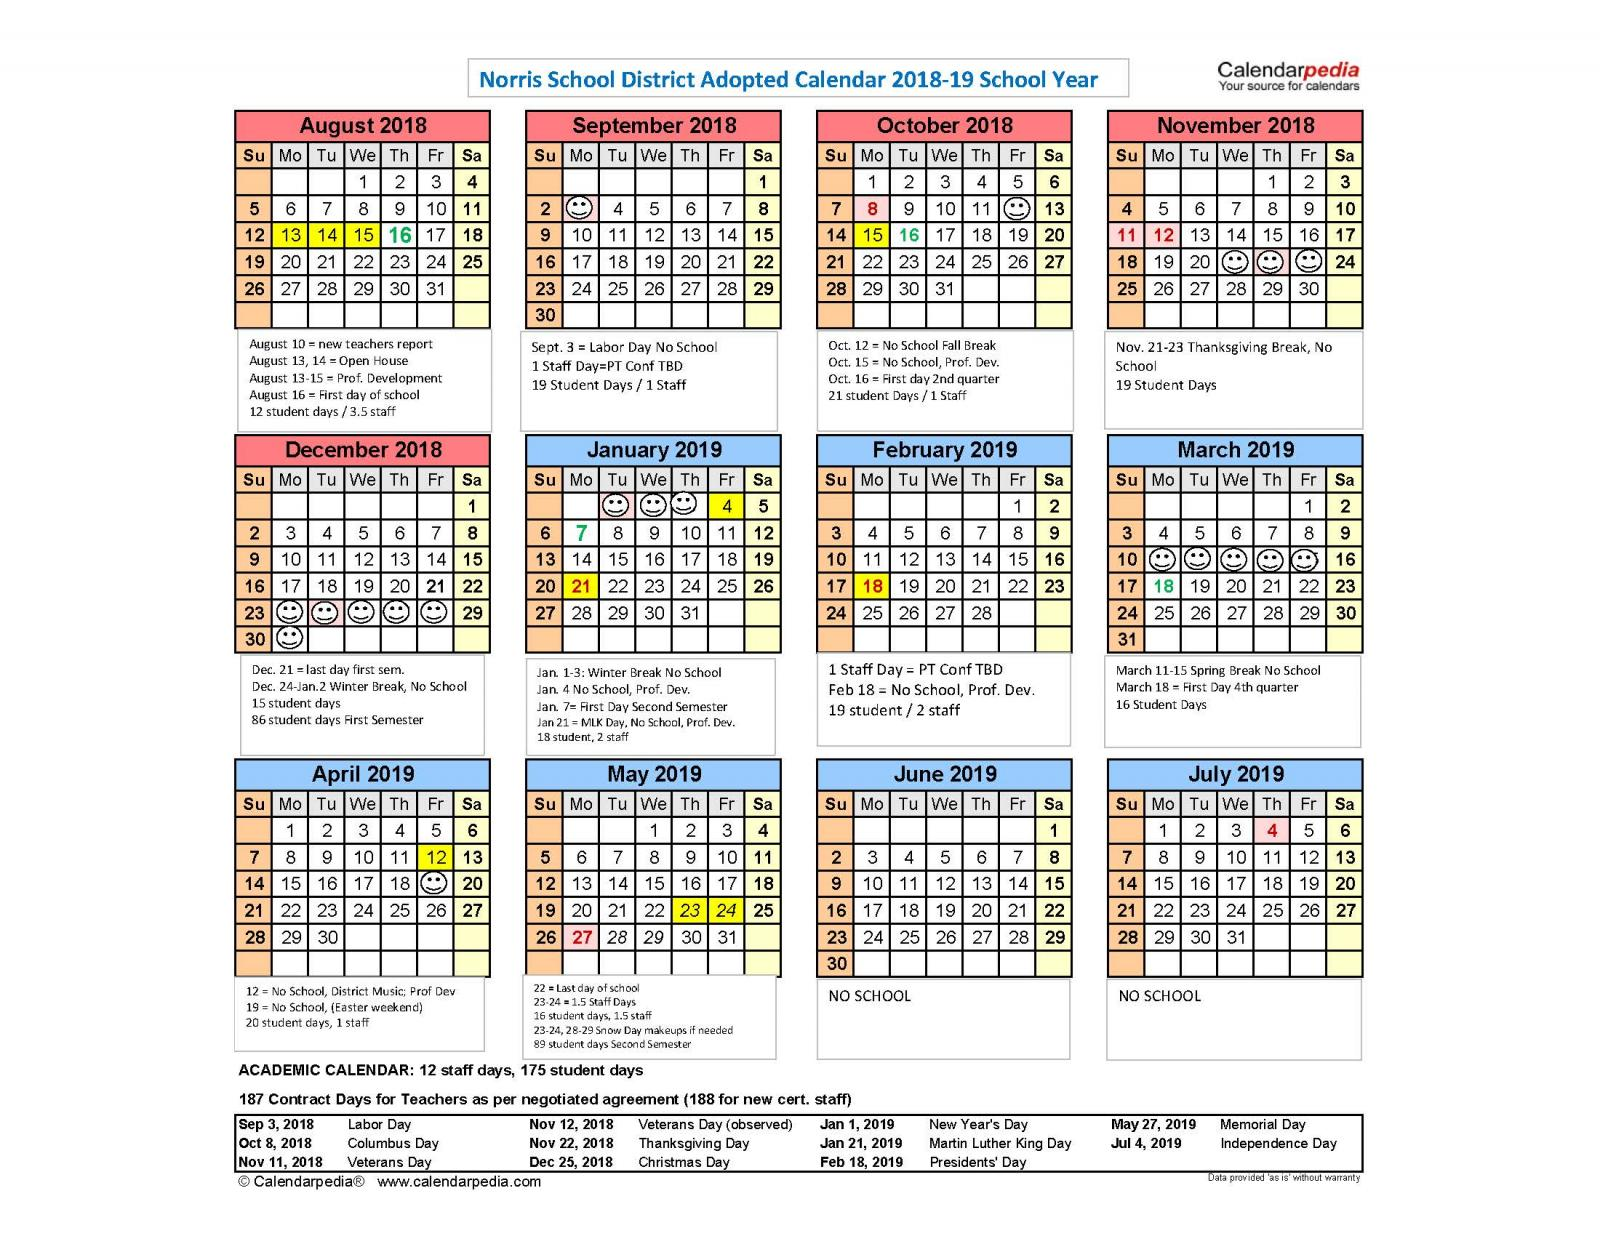 Calendar for 2018 19 School Year Available | Norris School District